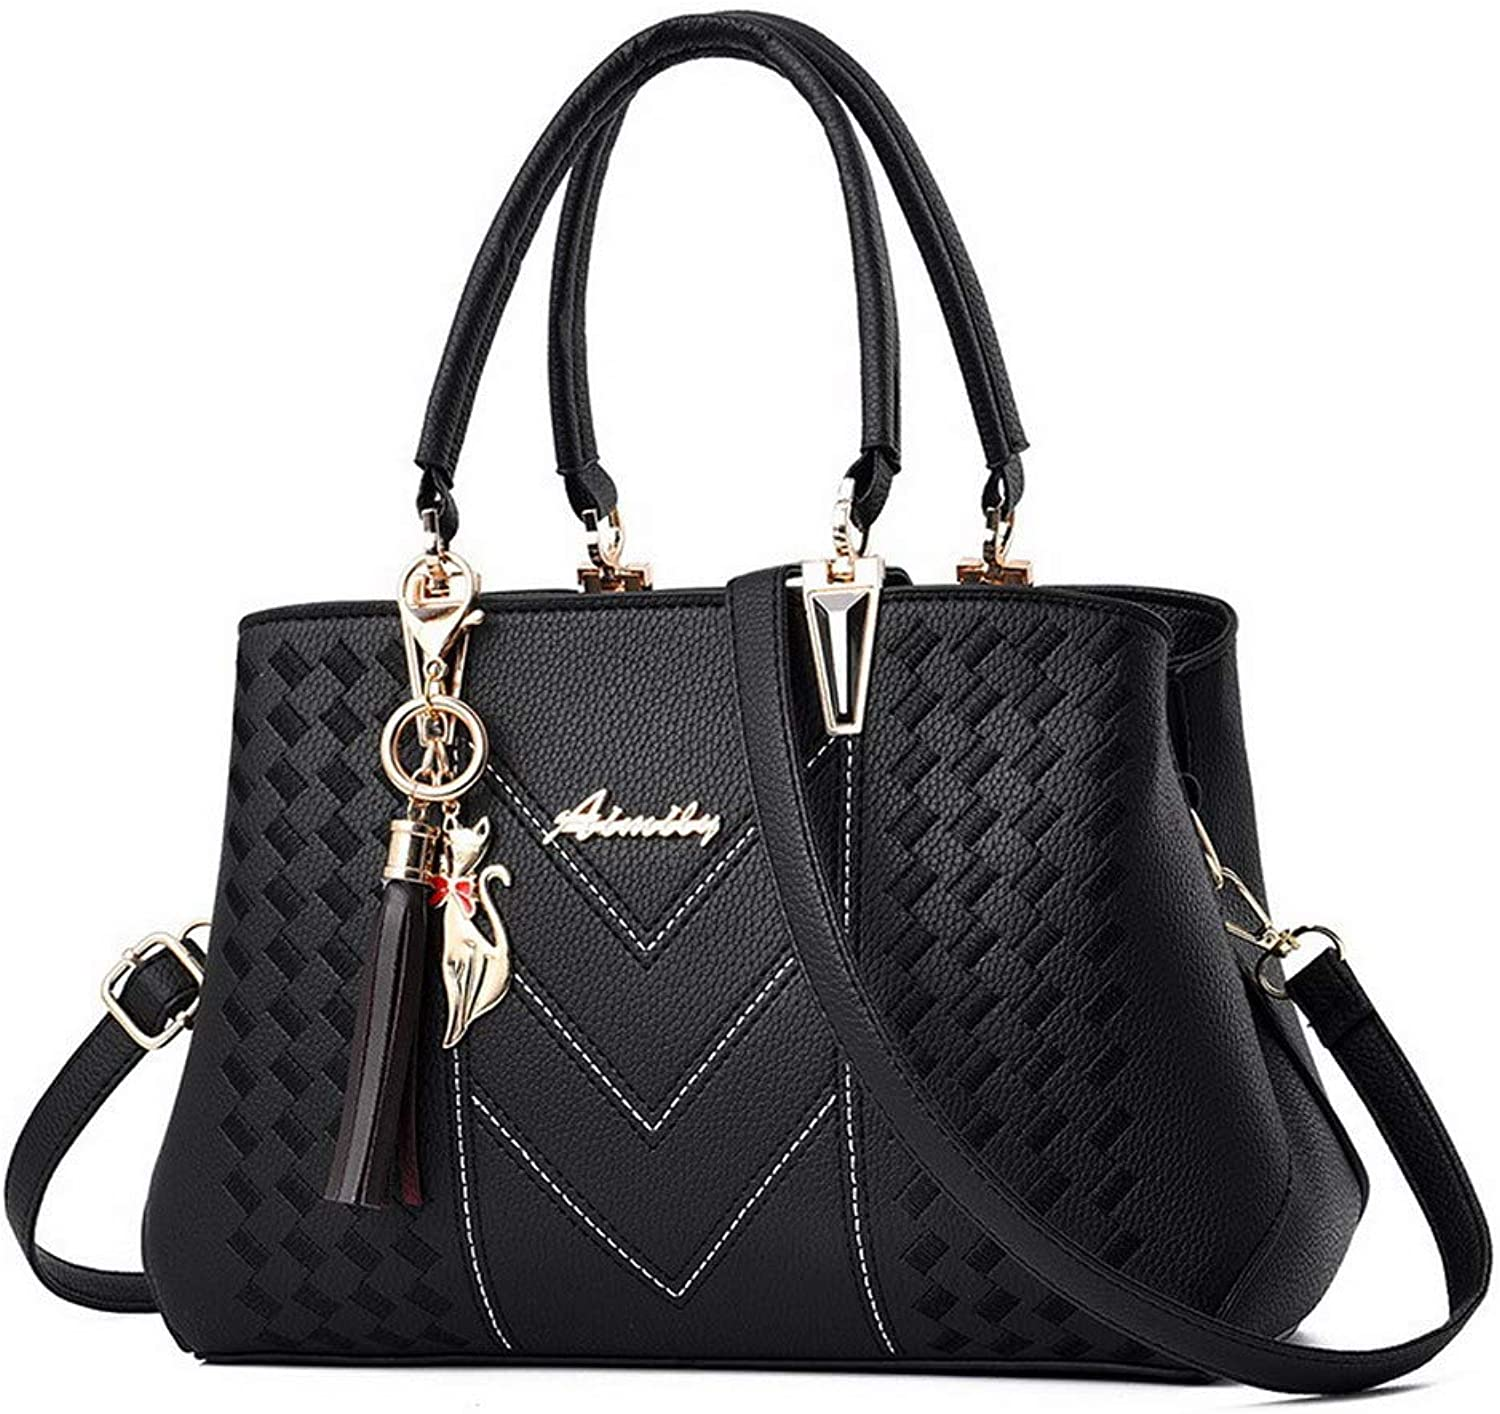 WeenFashion Women's Shopping Charms Pu Tote Bags Crossbody Bags,AMGBW182011